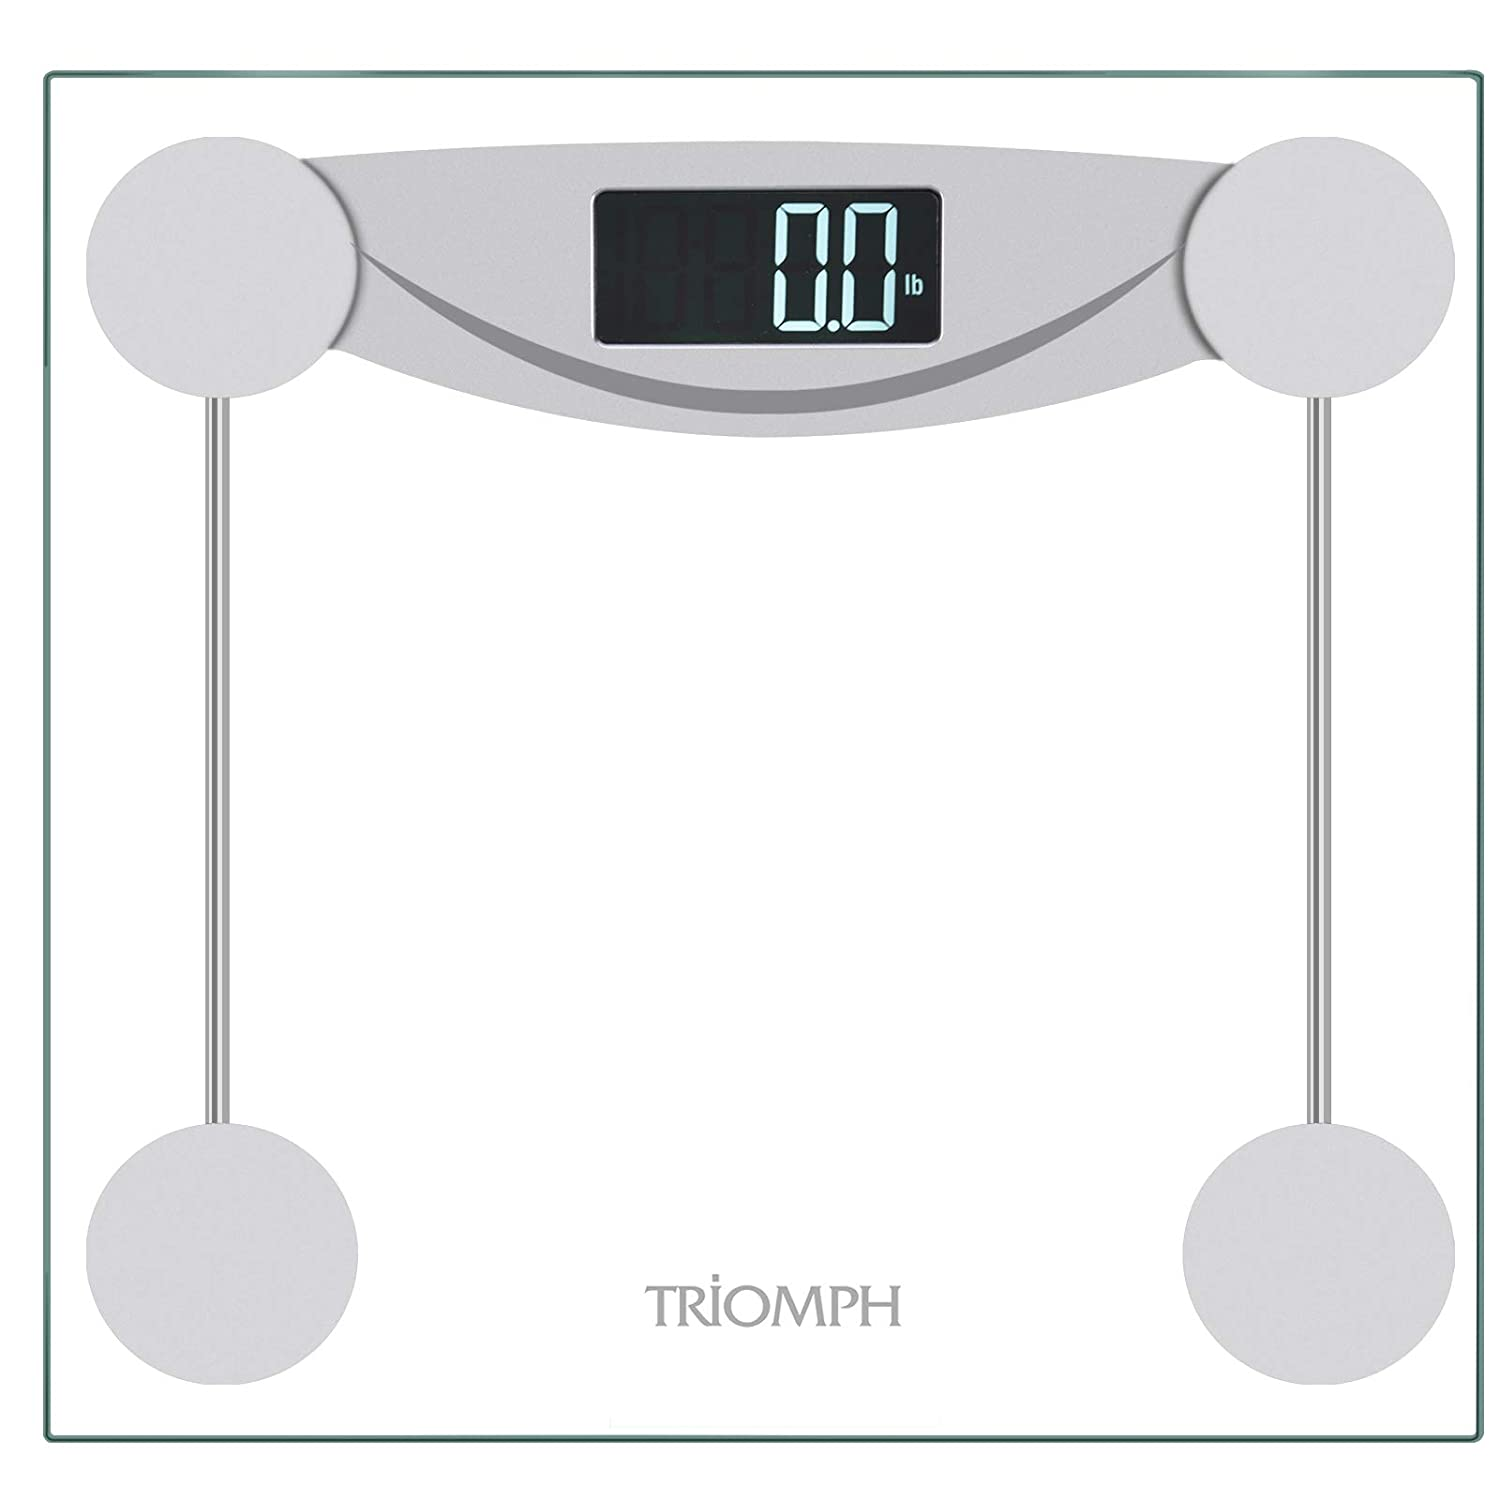 Amazon com triomph smart digital body weight bathroom scale with step on technology lcd backlit display 400 lbs capacity and accurate weight measurements